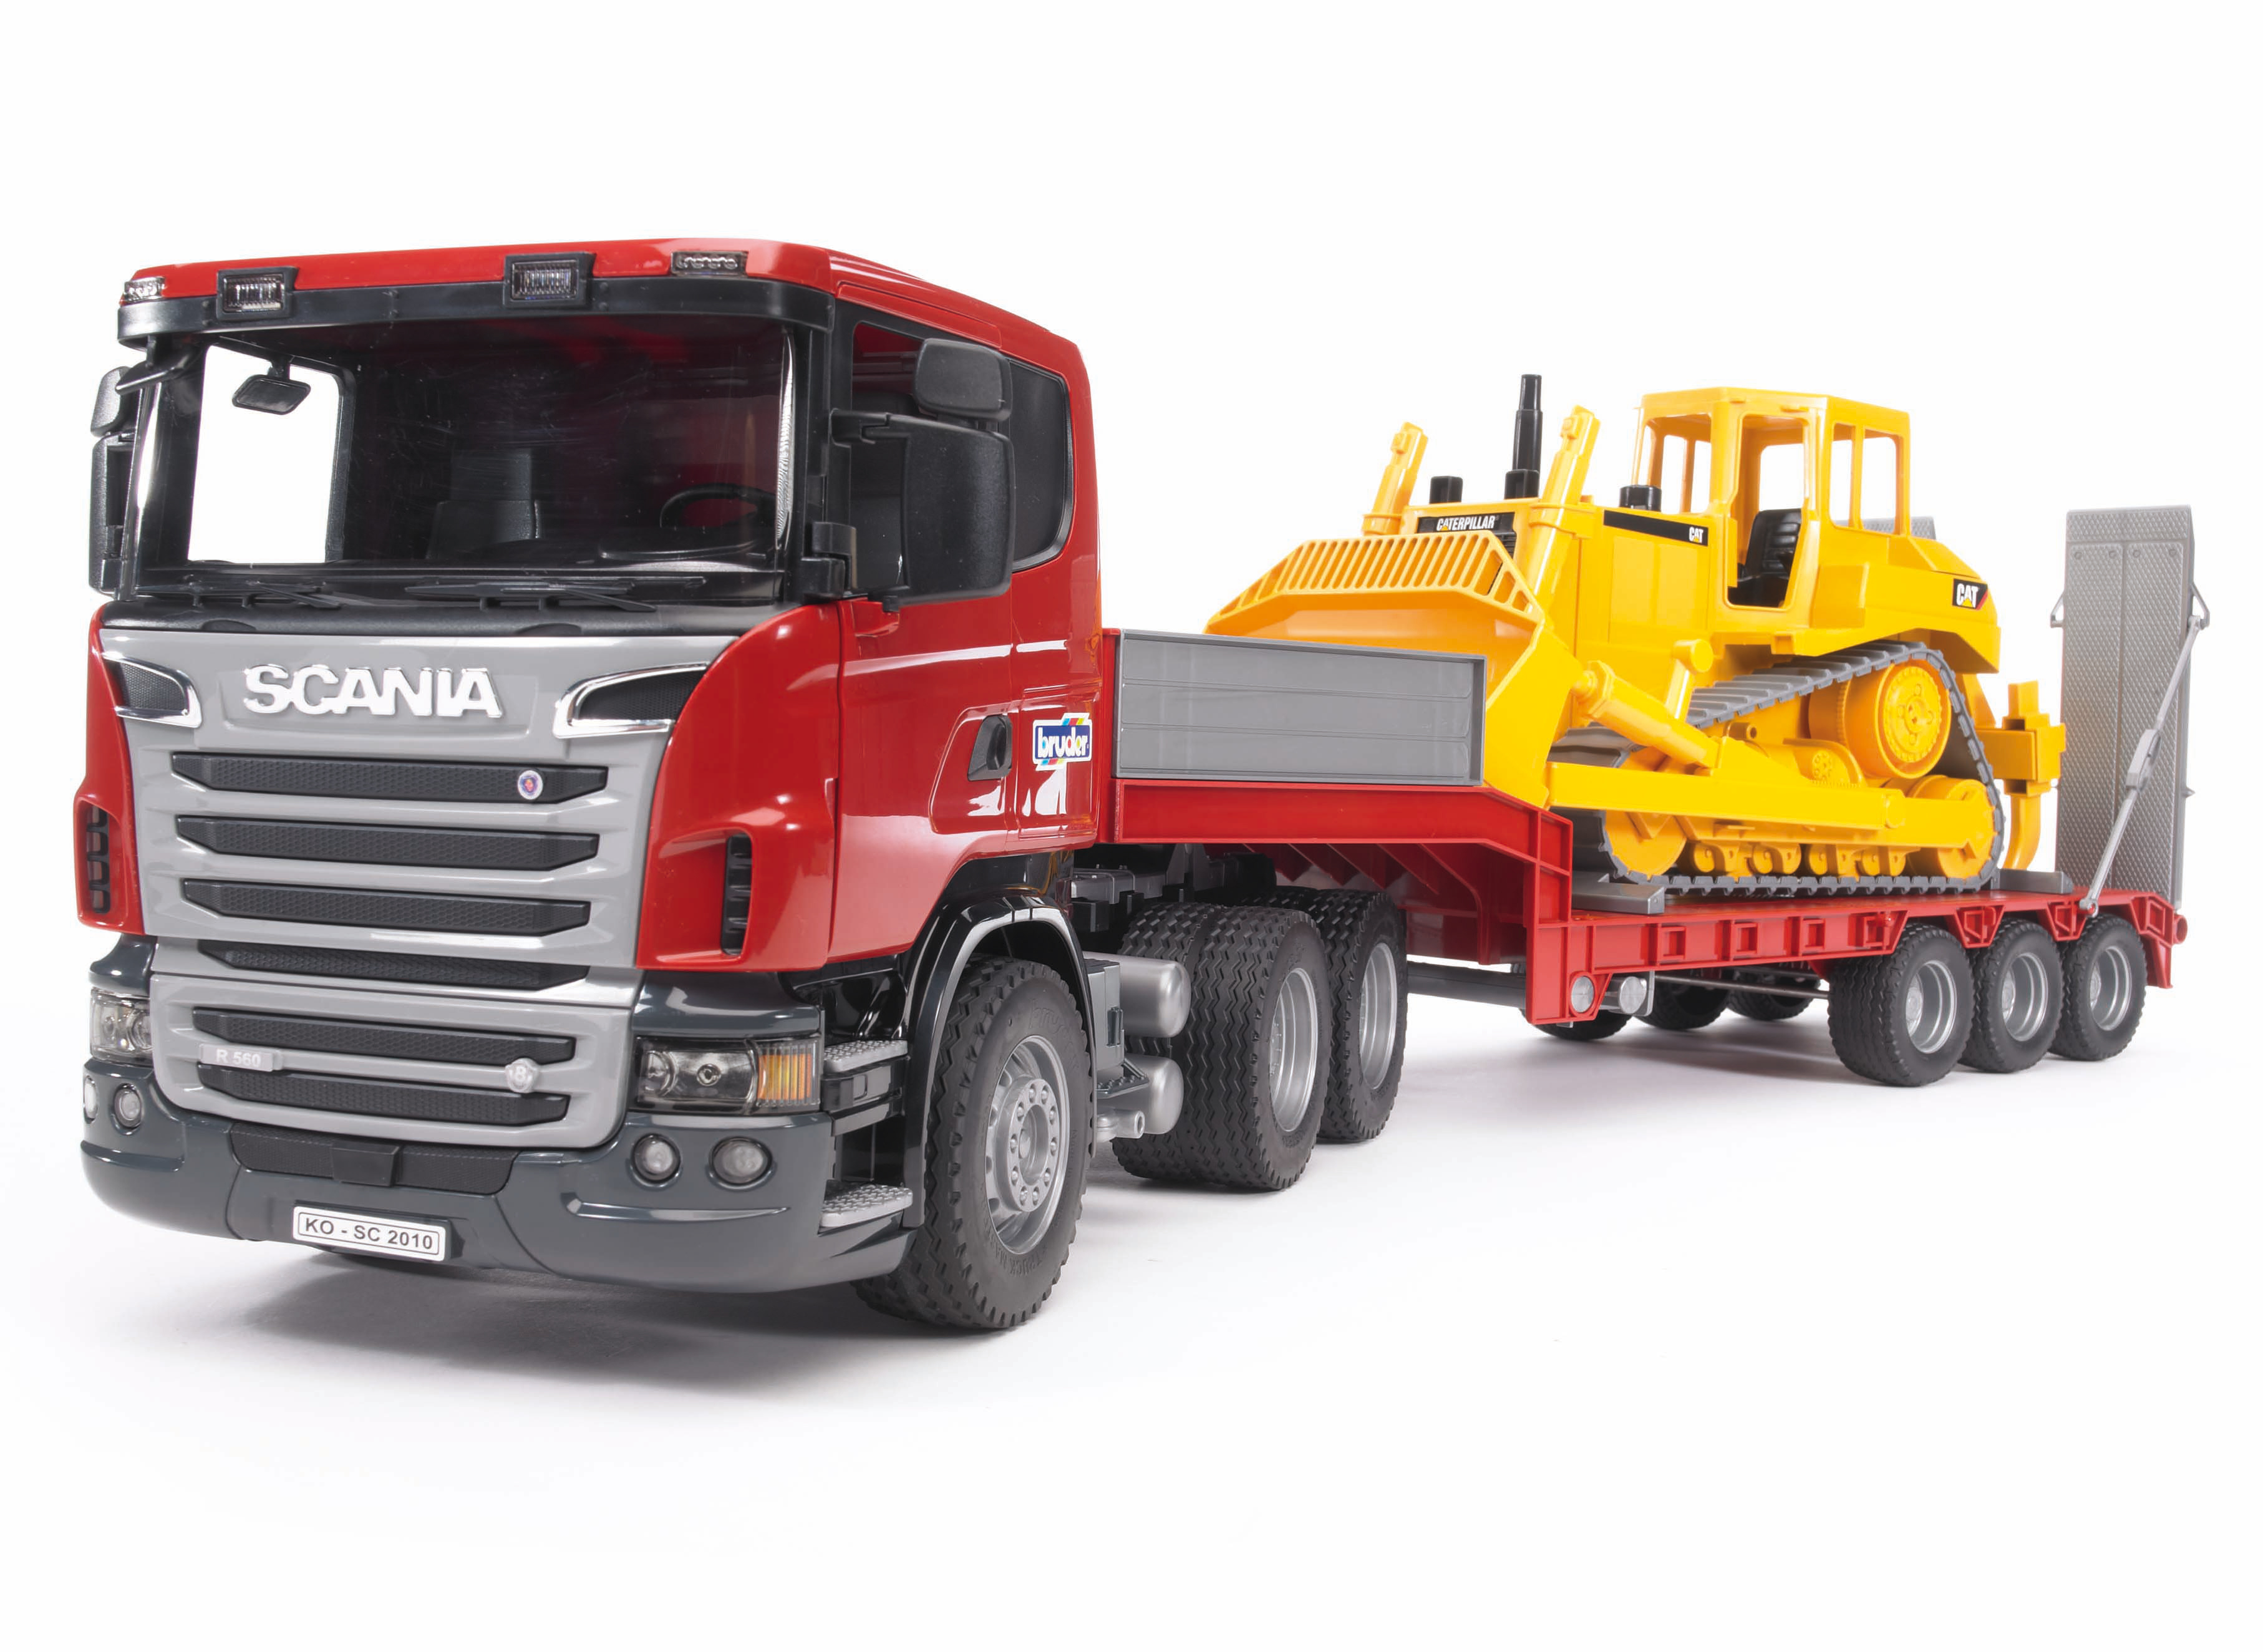 big boys toys rc with 216 Scania Dieplader En Cat Bulldozer on 32805930992 moreover Pirate Series Dragon Boat Lego besides Productdetail also Productdetail furthermore 216 Scania Dieplader En Cat Bulldozer.